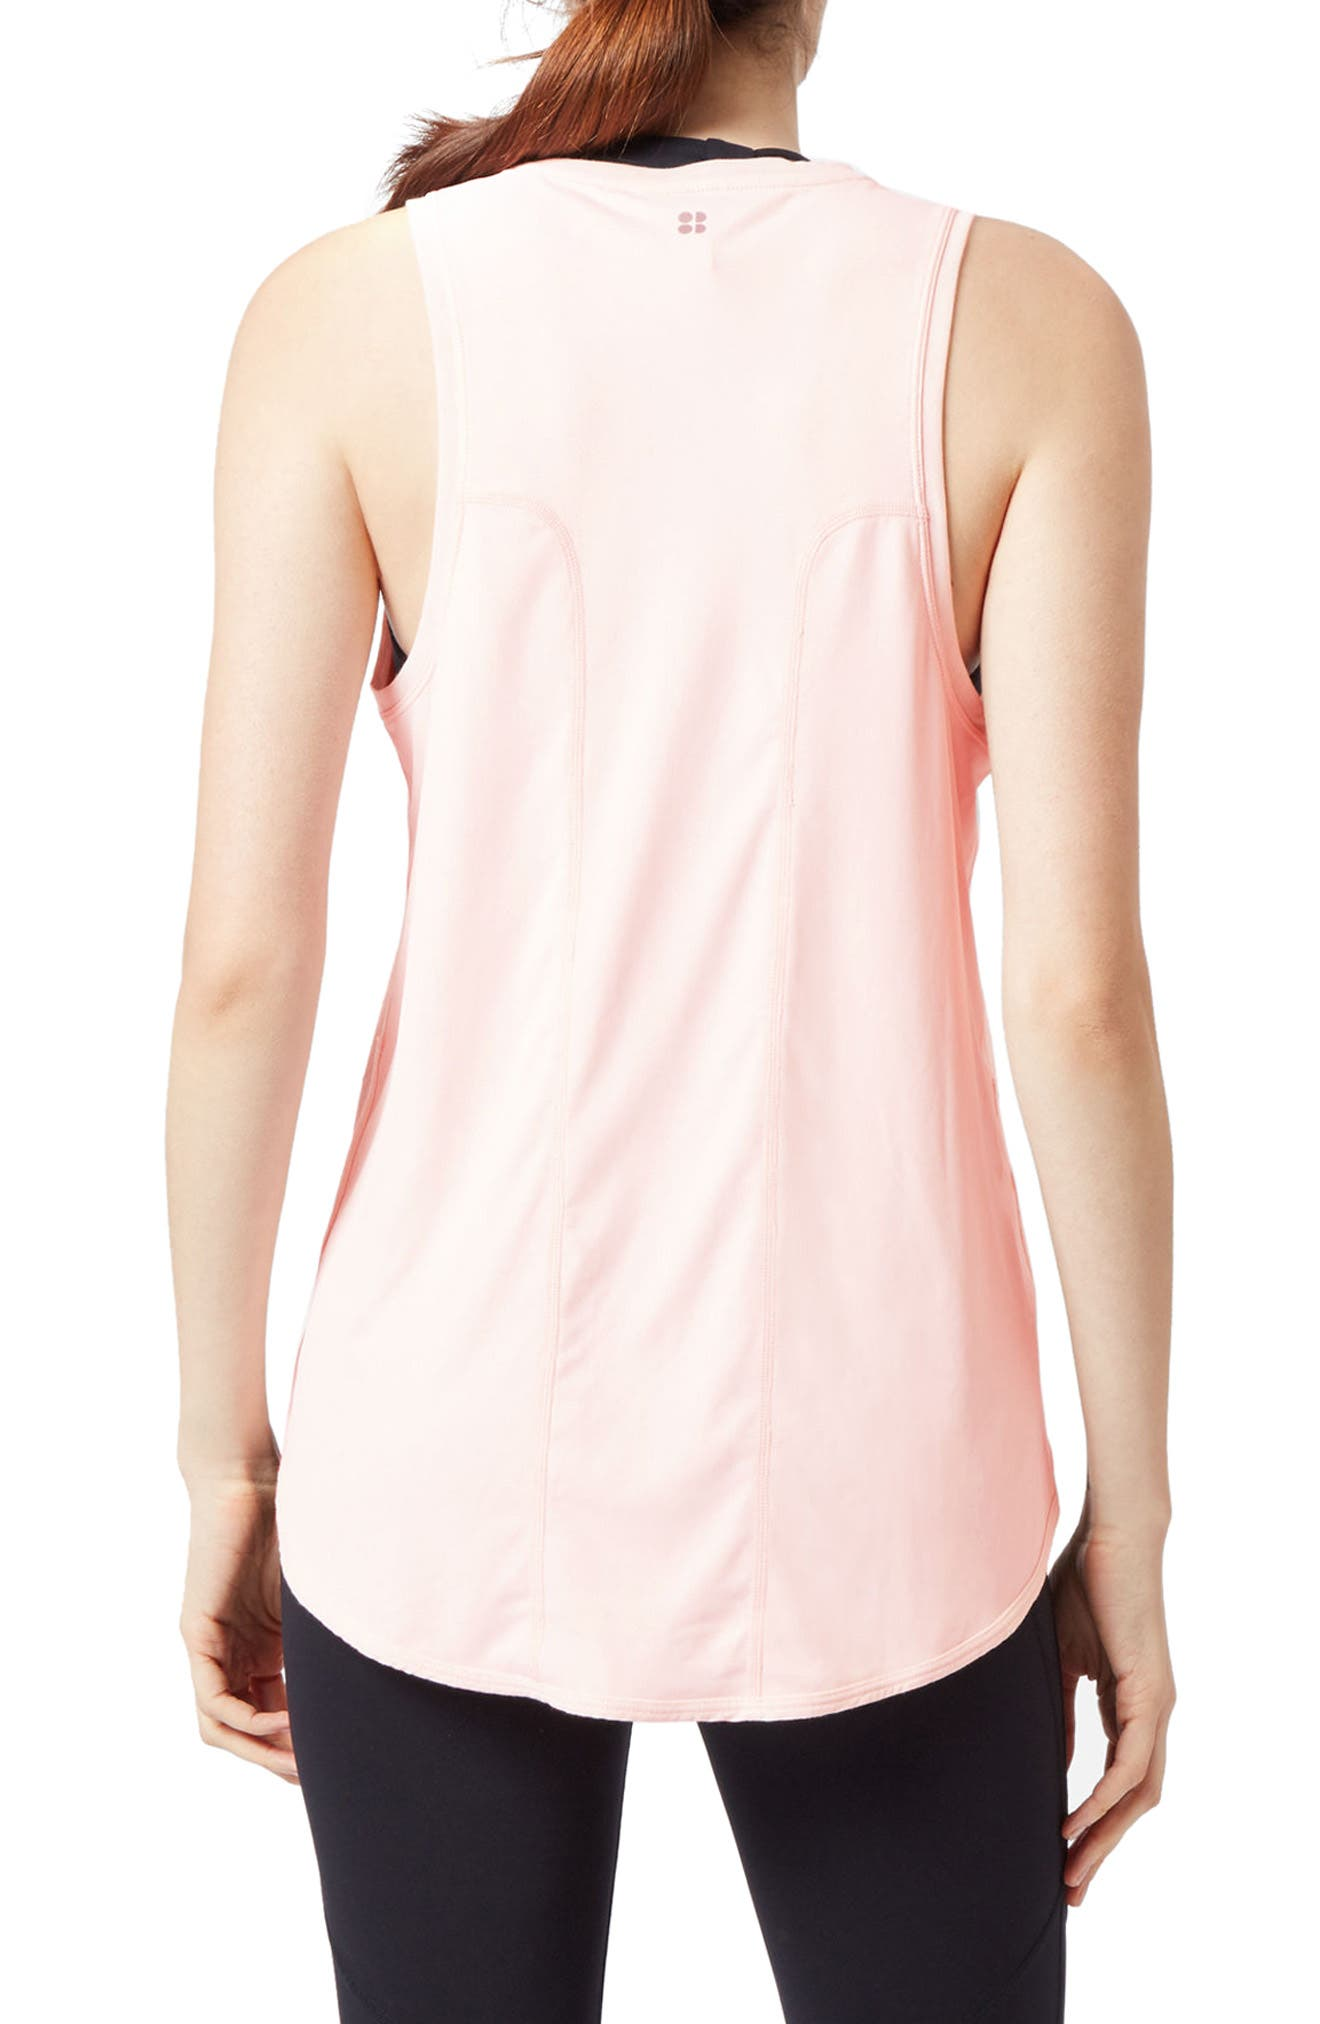 Pacesetter Run Tank,                             Alternate thumbnail 2, color,                             Liberated Pink